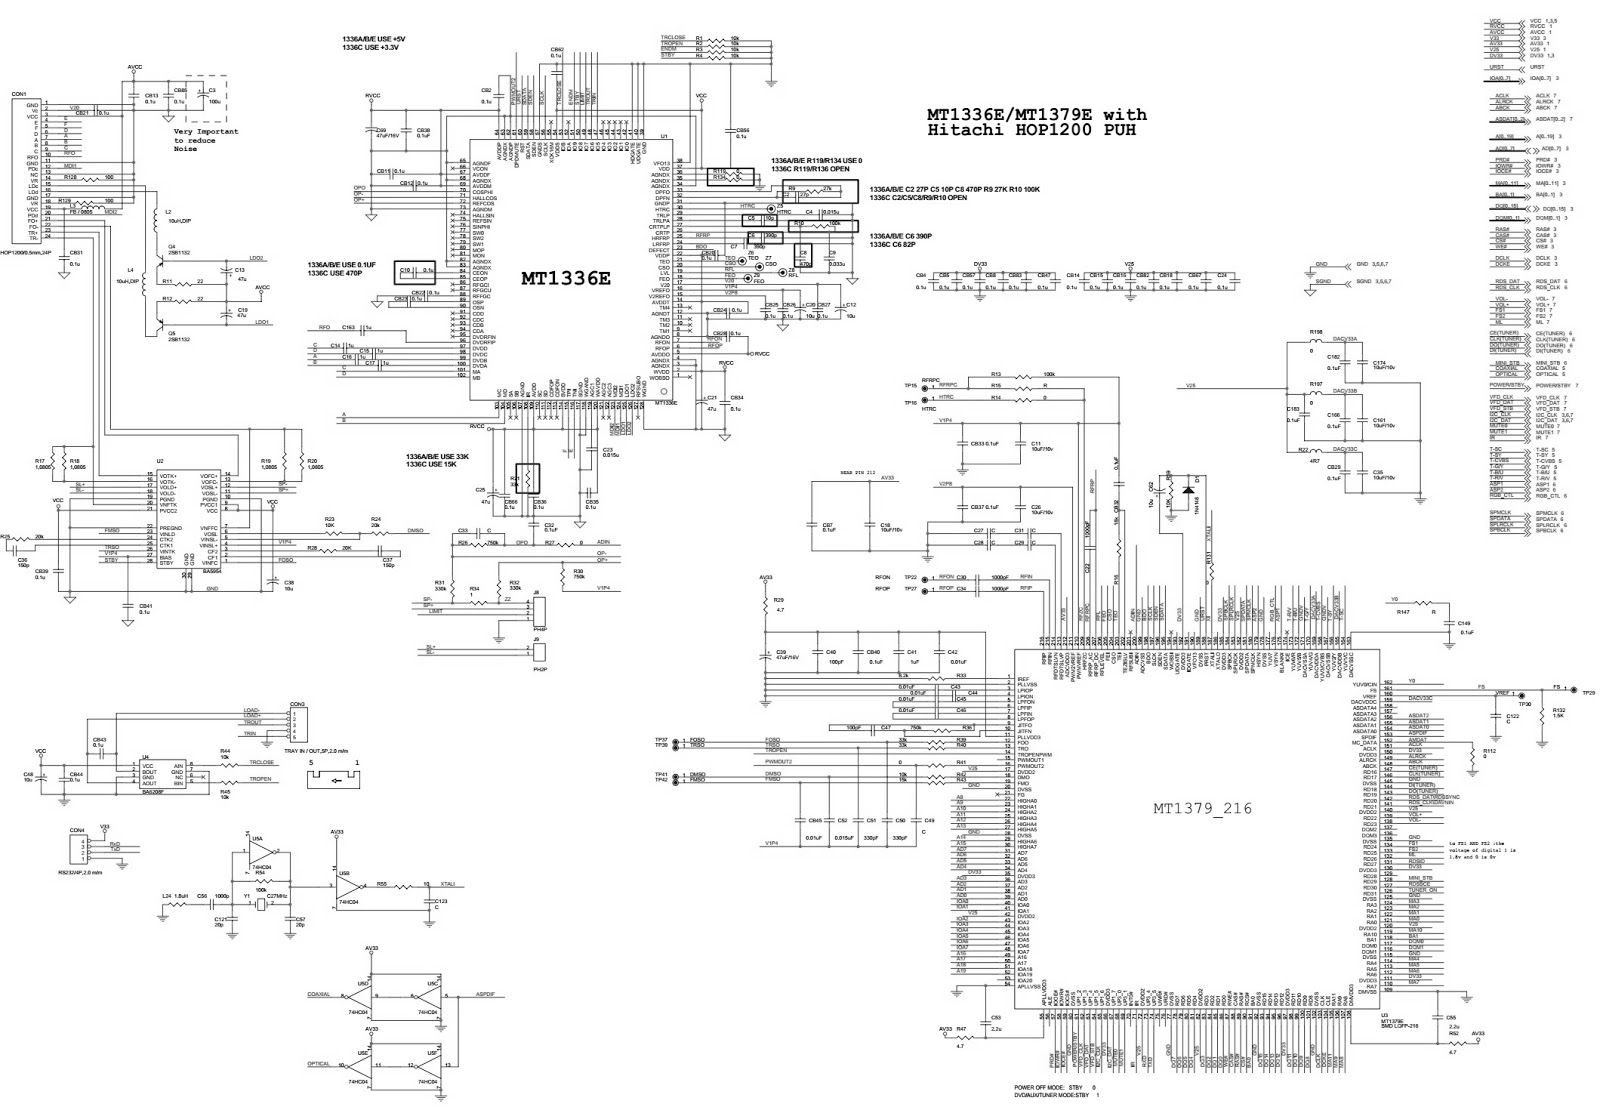 htc hd2 schematic diagram